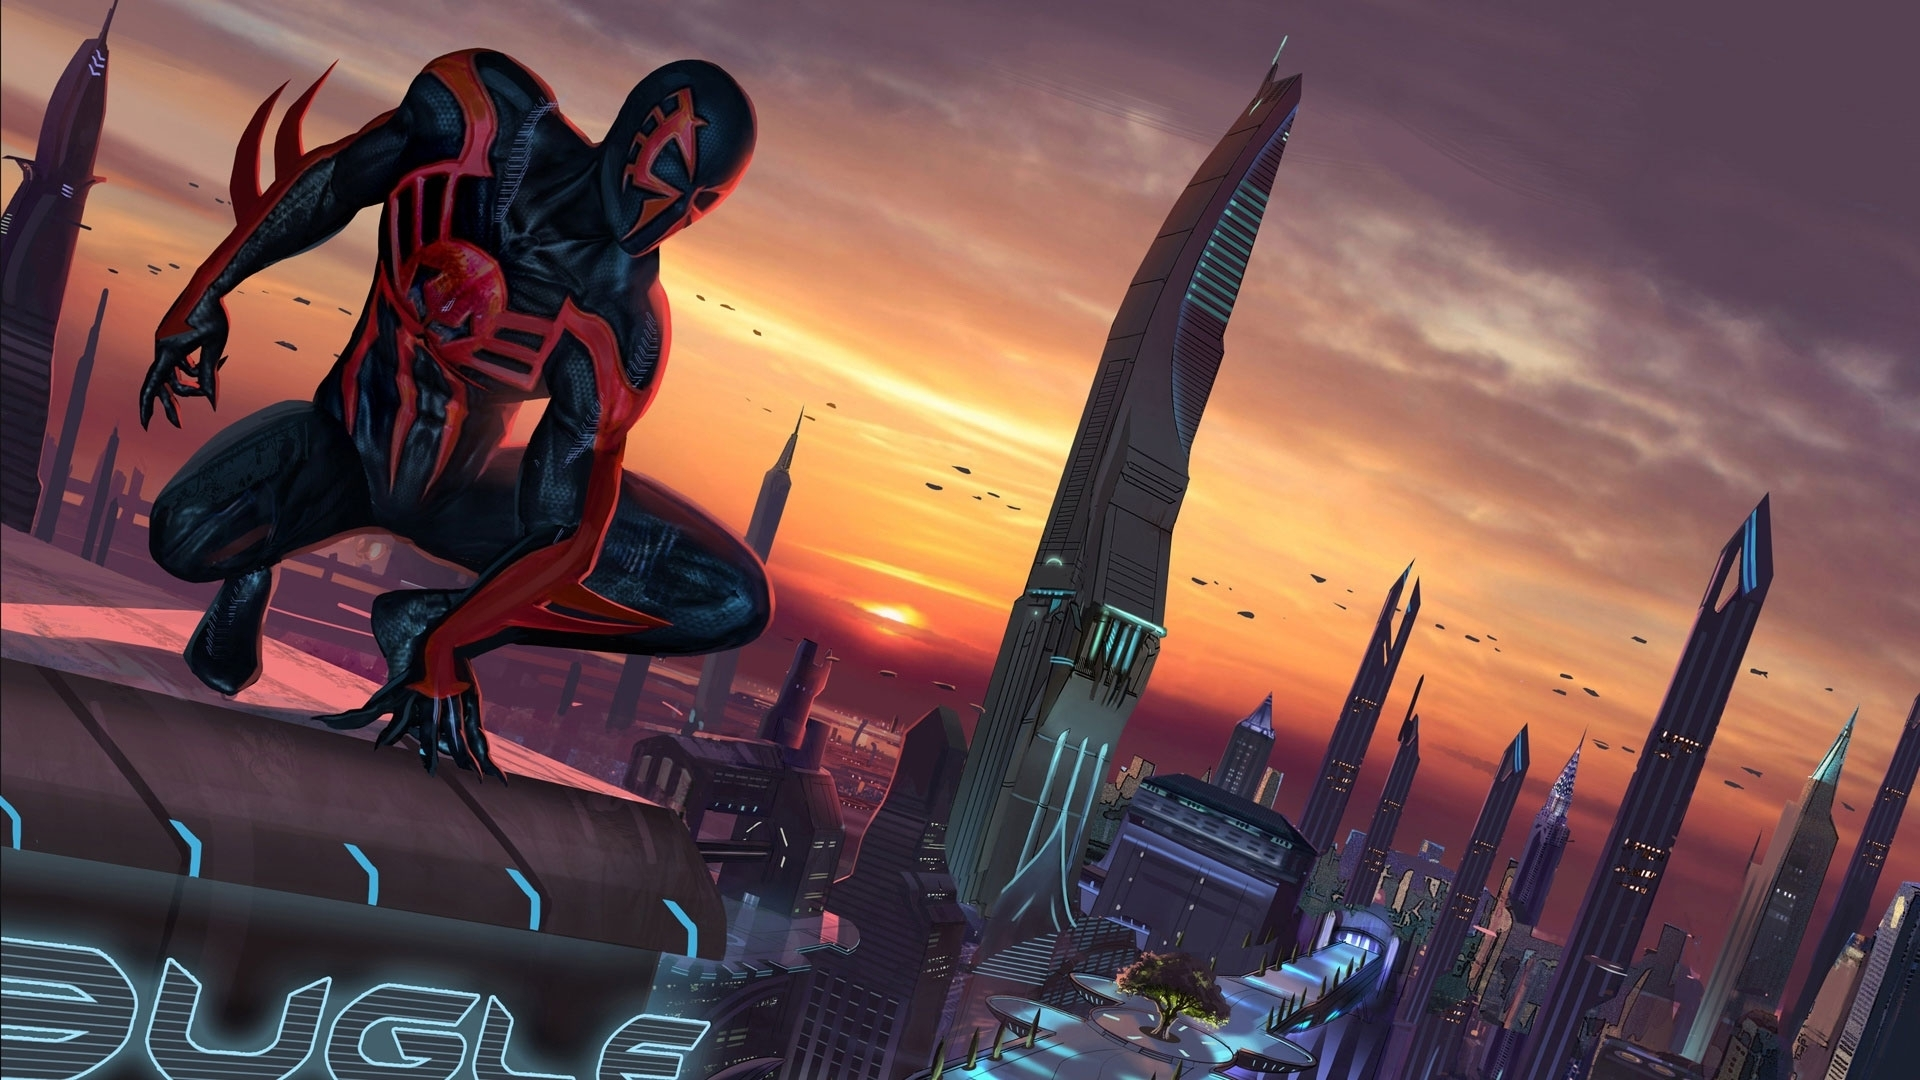 spider-man 2099 full hd wallpaper and background image | 1920x1080